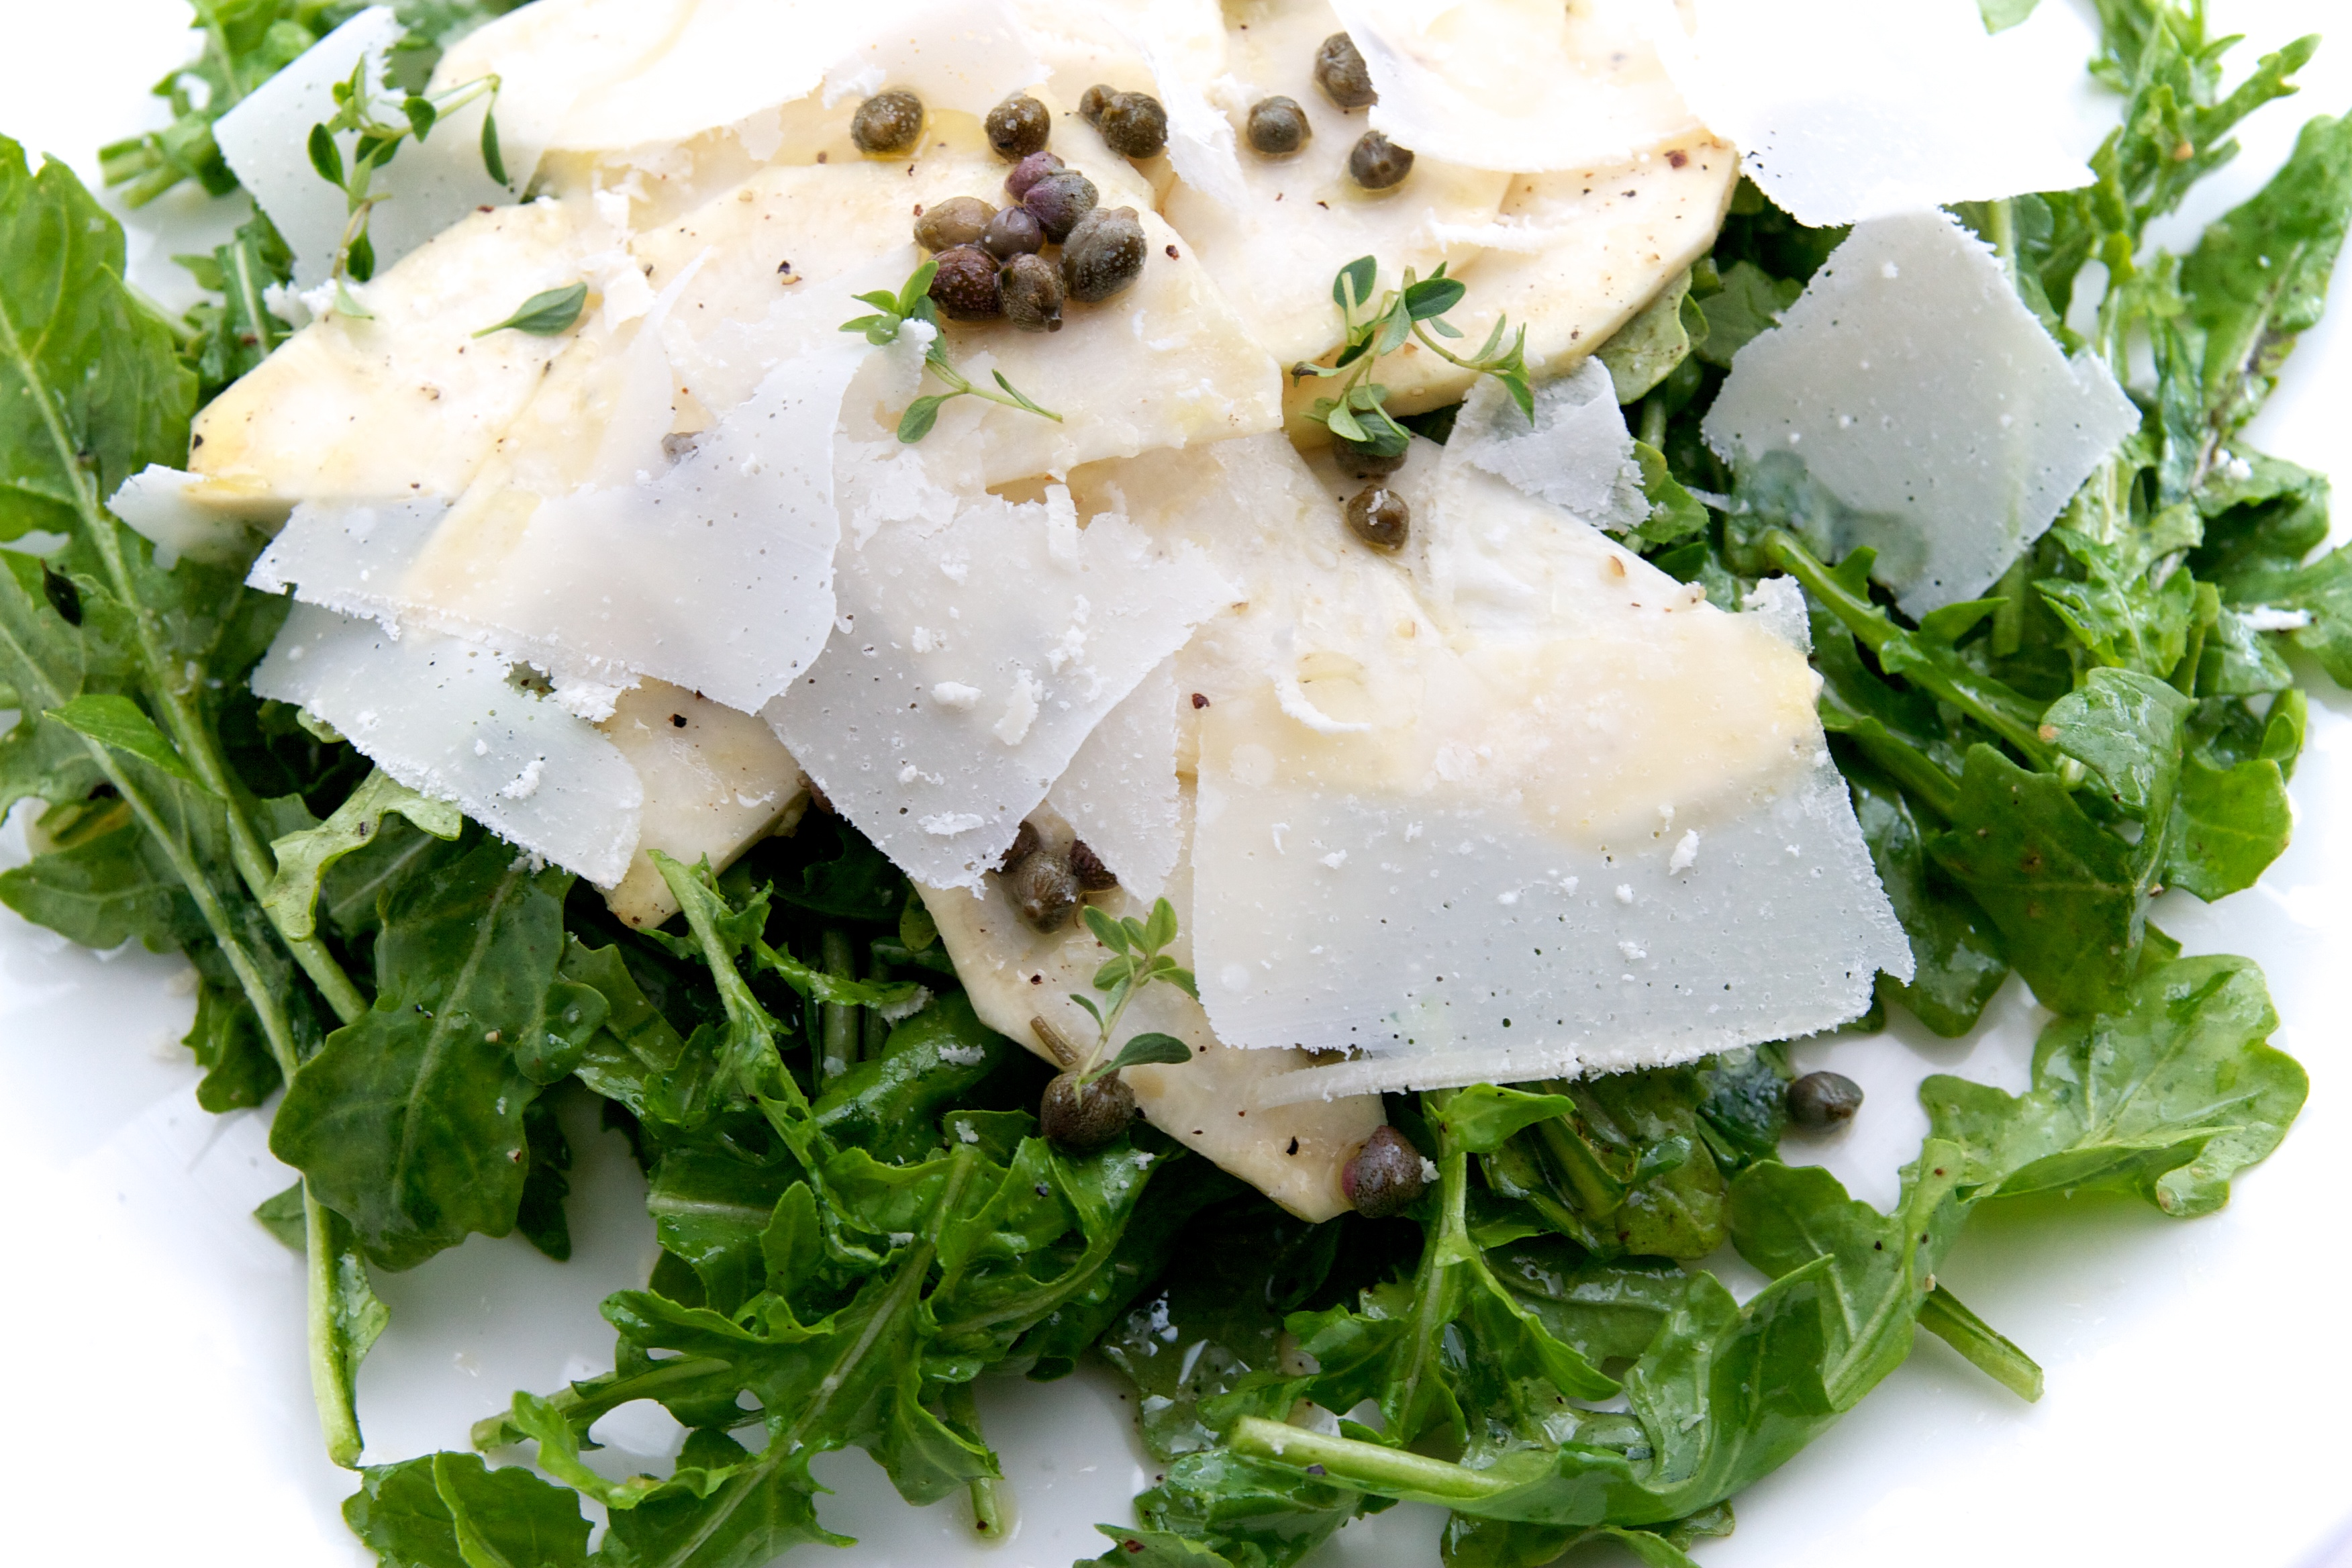 Celery Root & Rocket Salad with Lemon, Capers & Parmesan